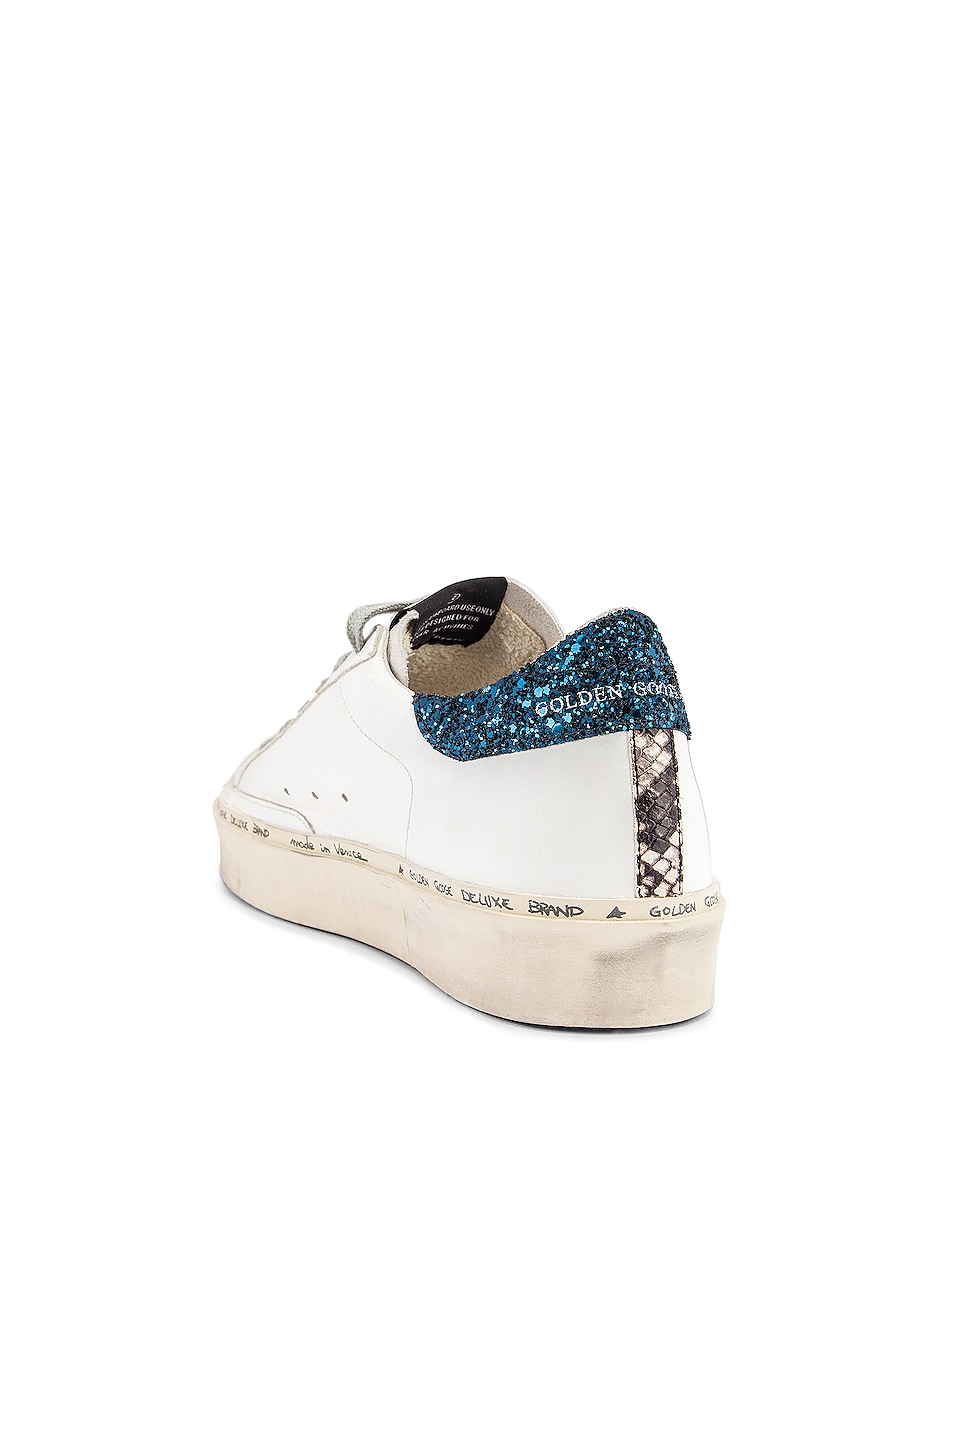 Image 3 of Golden Goose Hi Star Sneaker in White, Black & Blue Glitter